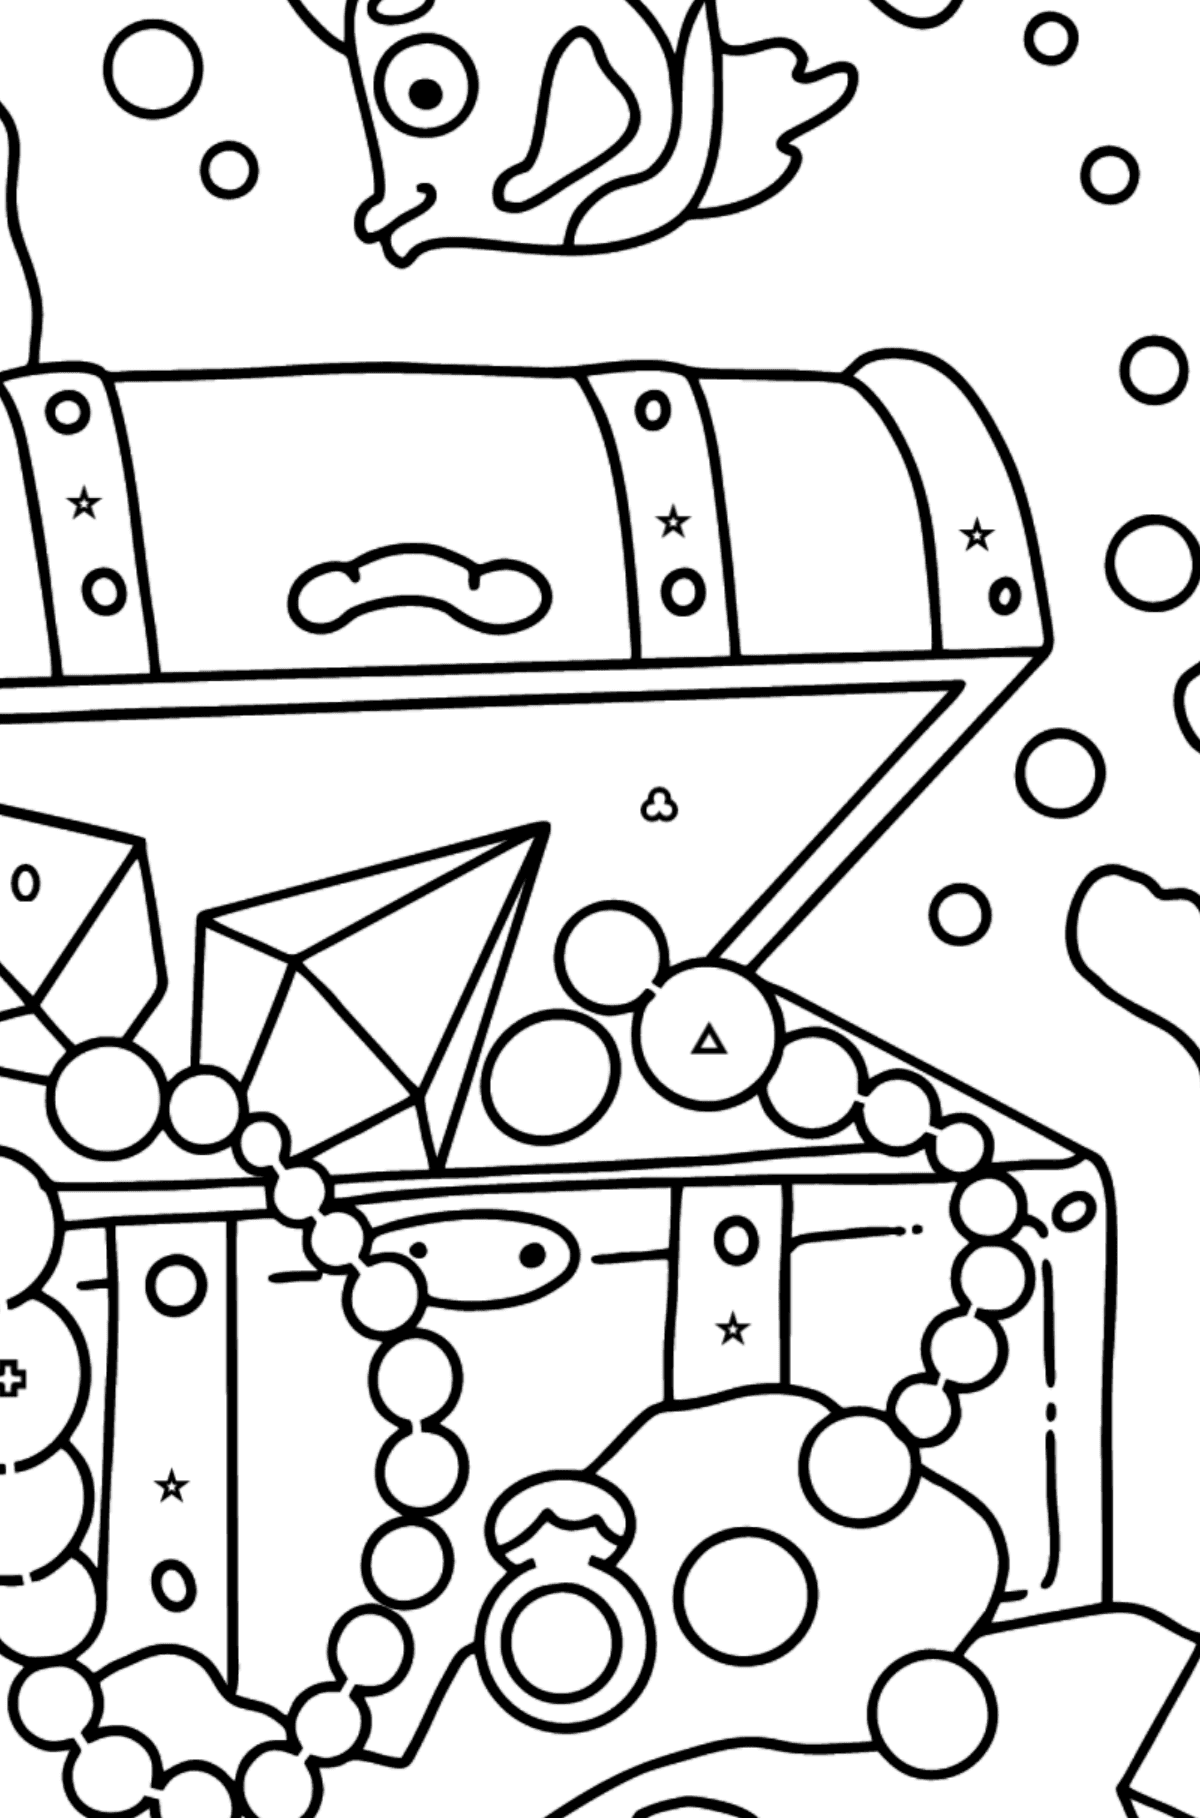 Coloring Page - A Fish is Swimming Around a Pirate's Chest - Coloring by Geometric Shapes for Kids